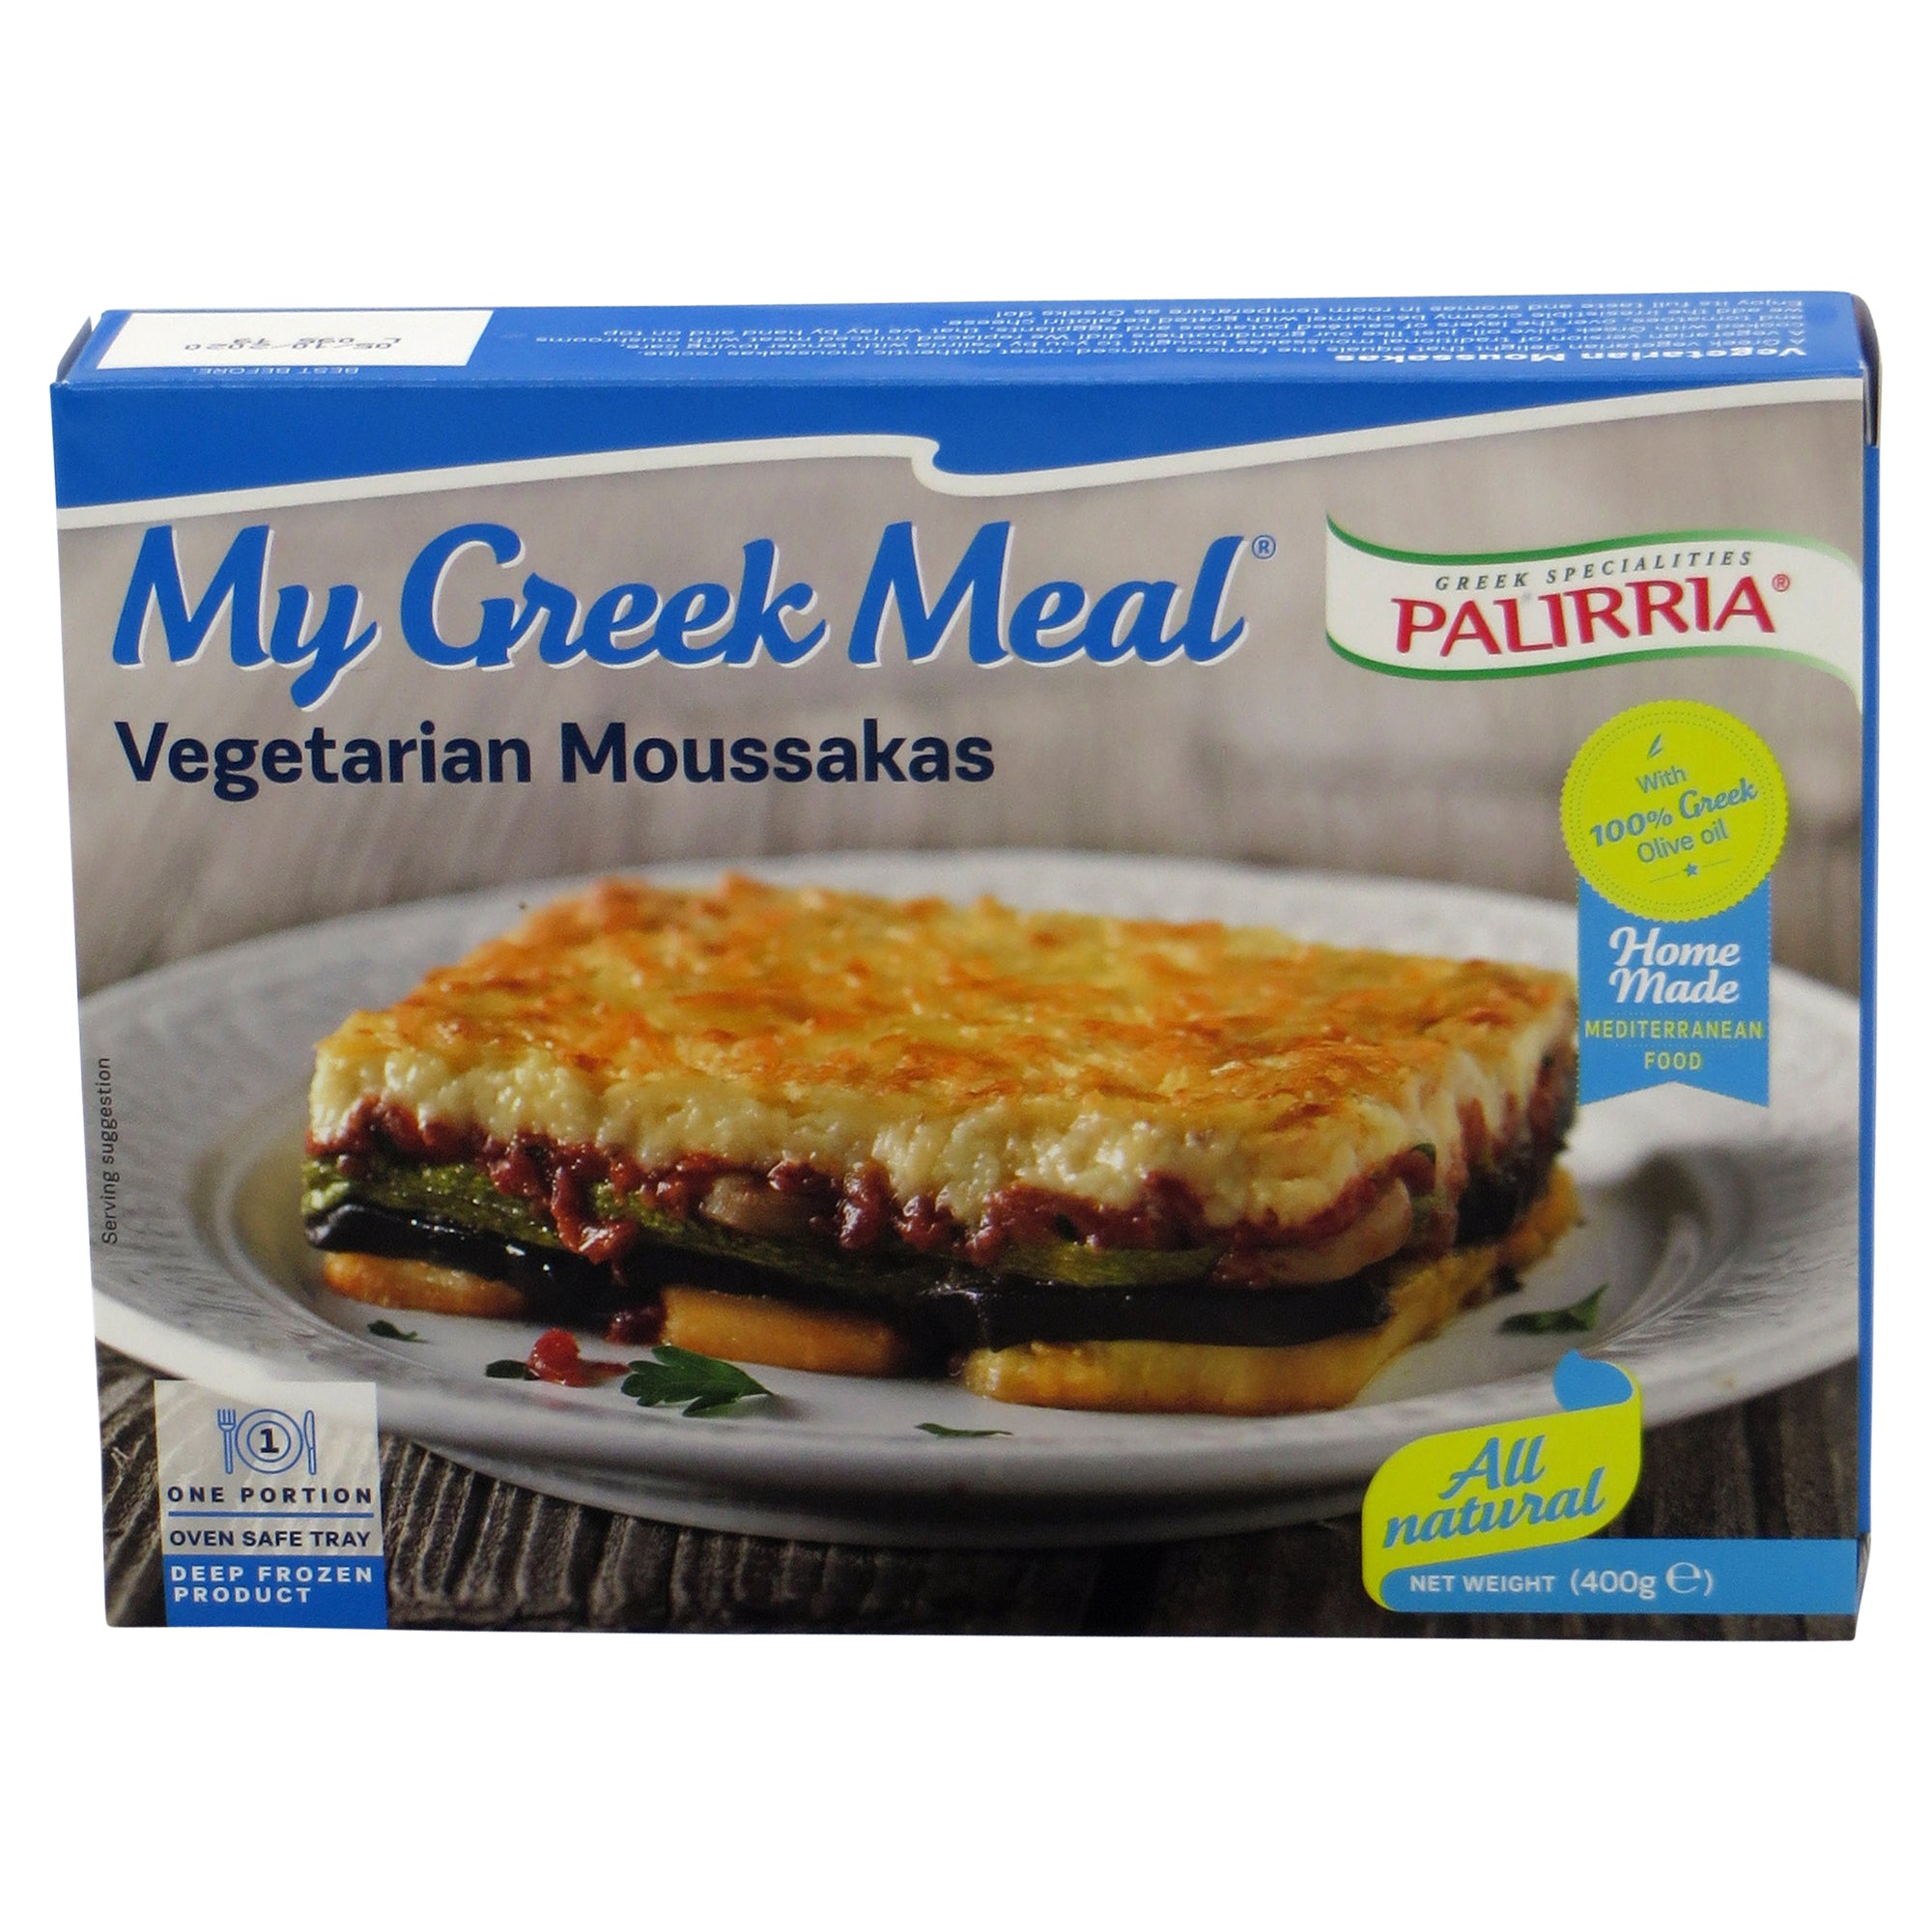 'My Greek Meal' Vegetarian Moussakas 400g